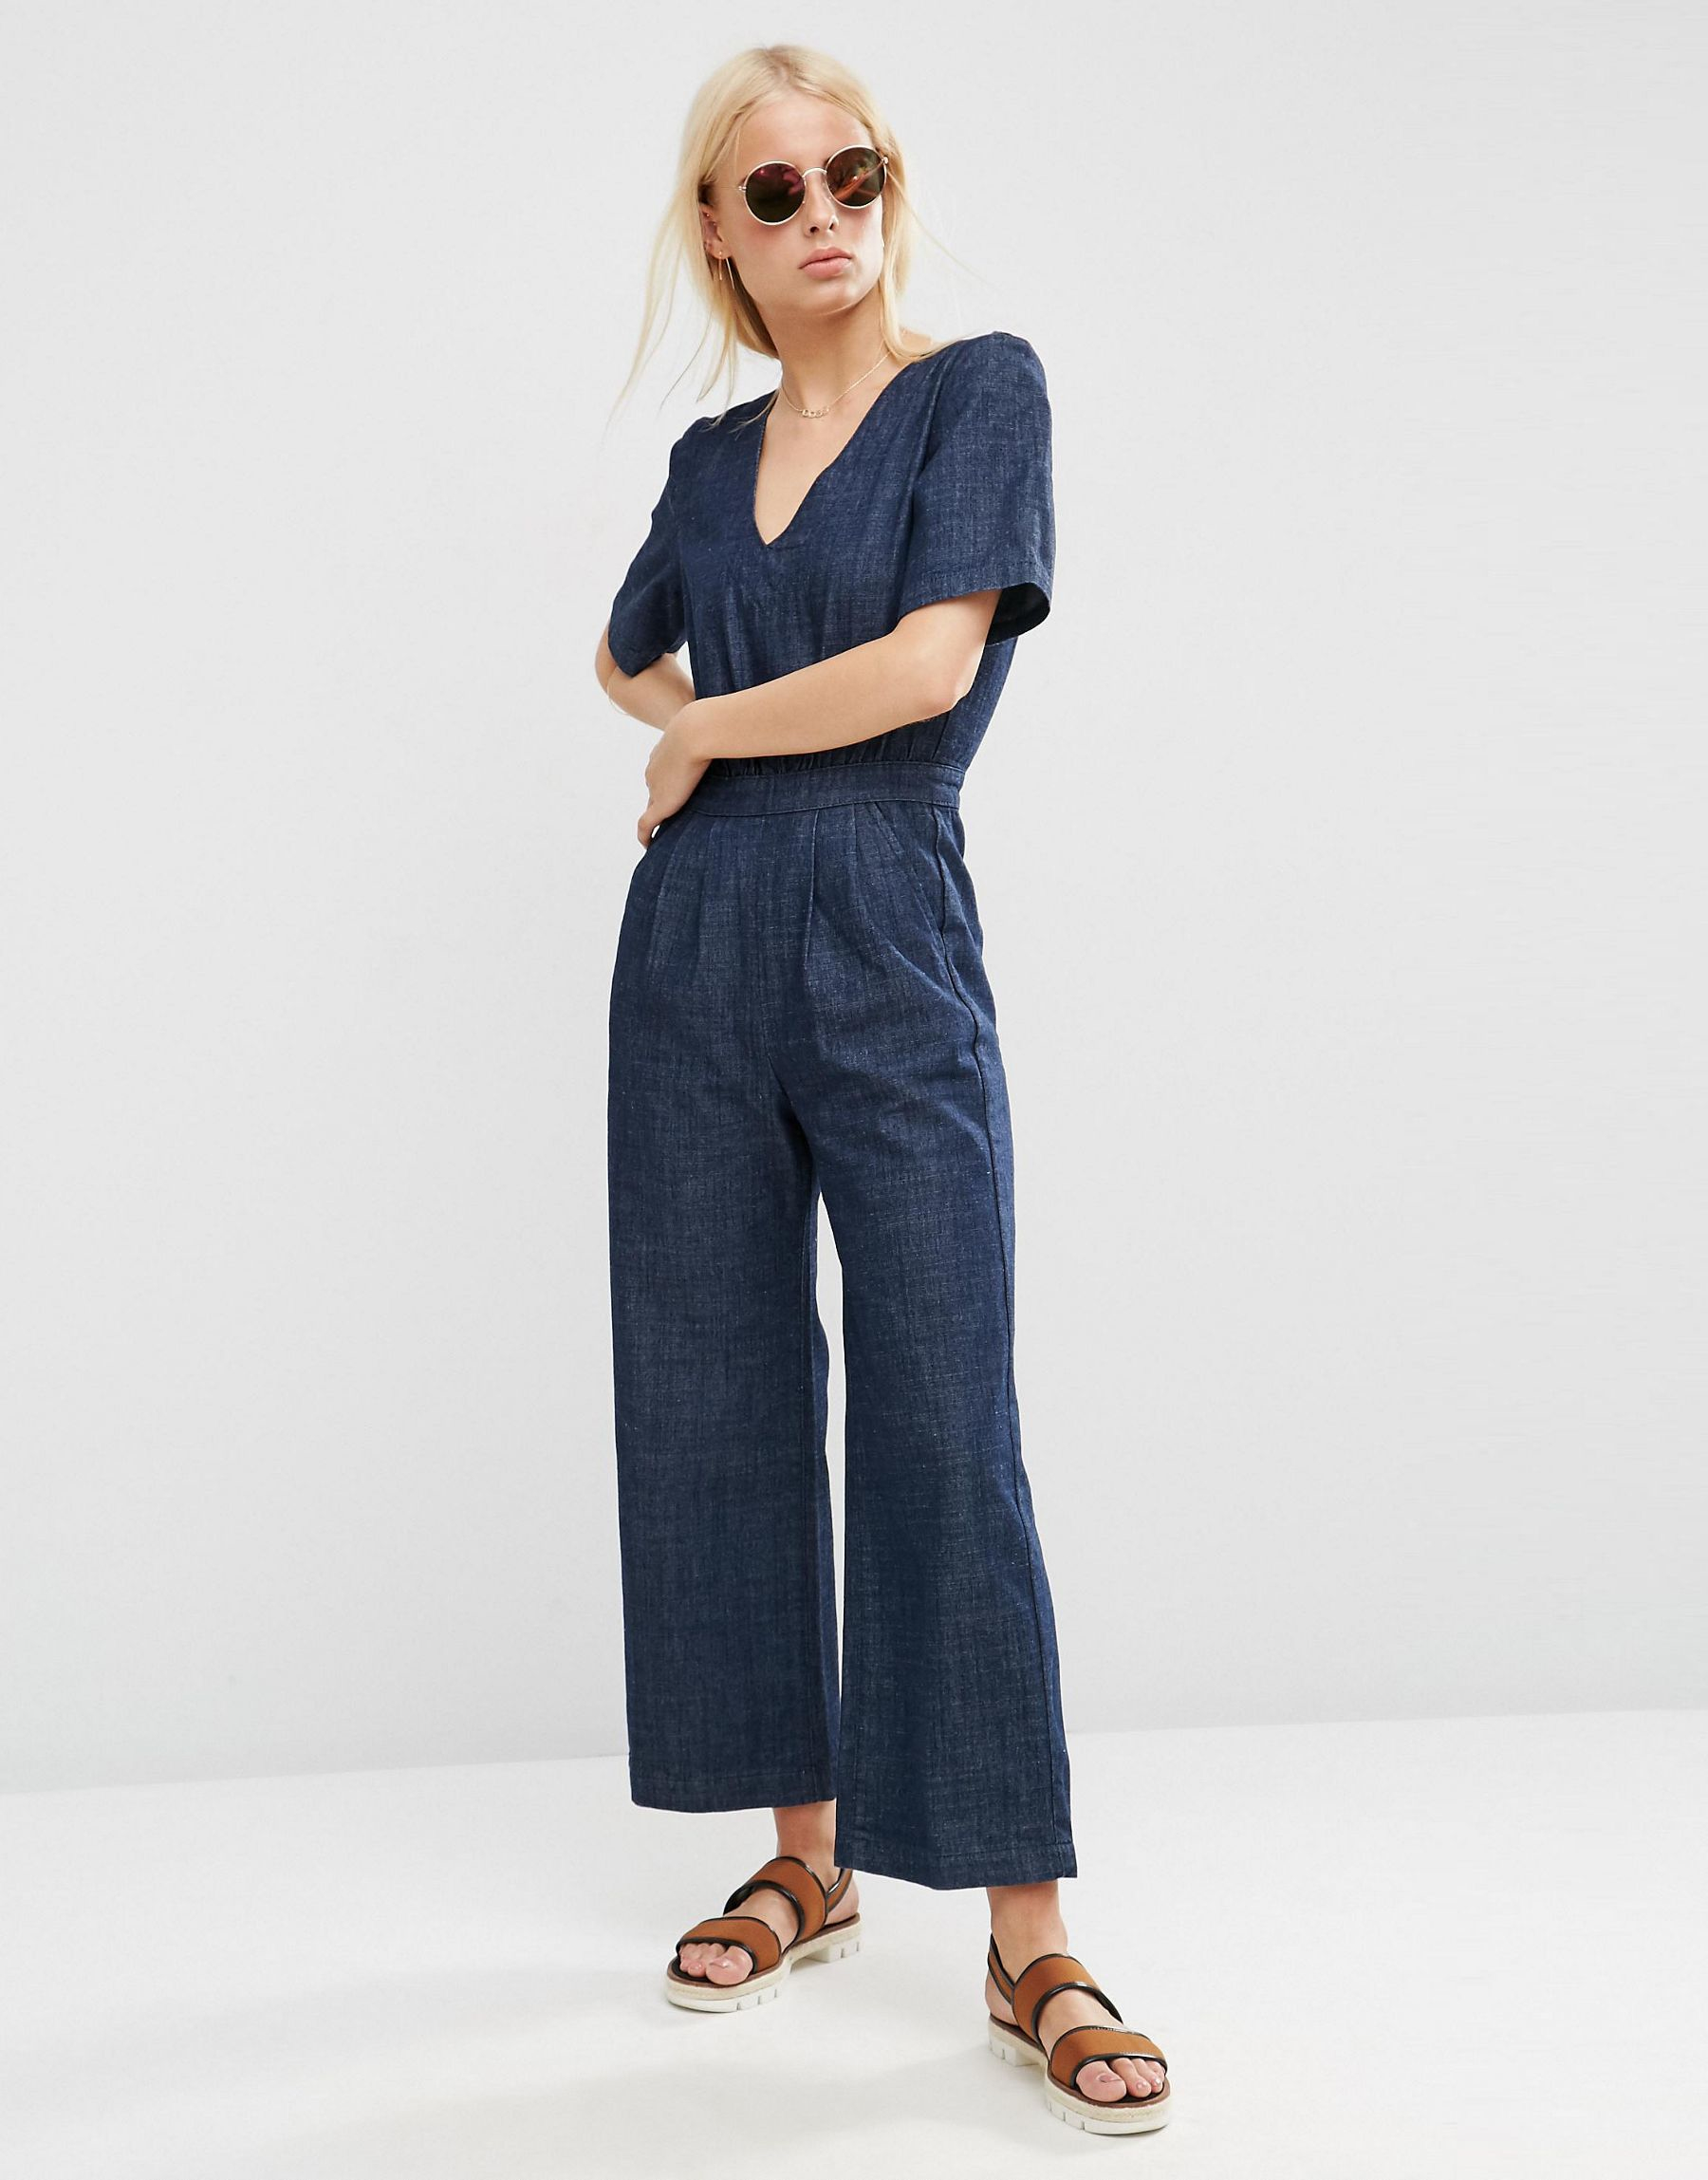 09e9c1d88bf ASOS - Blue Denim Wide Leg Jumpsuit In Cropped Length With Tie Back - Lyst